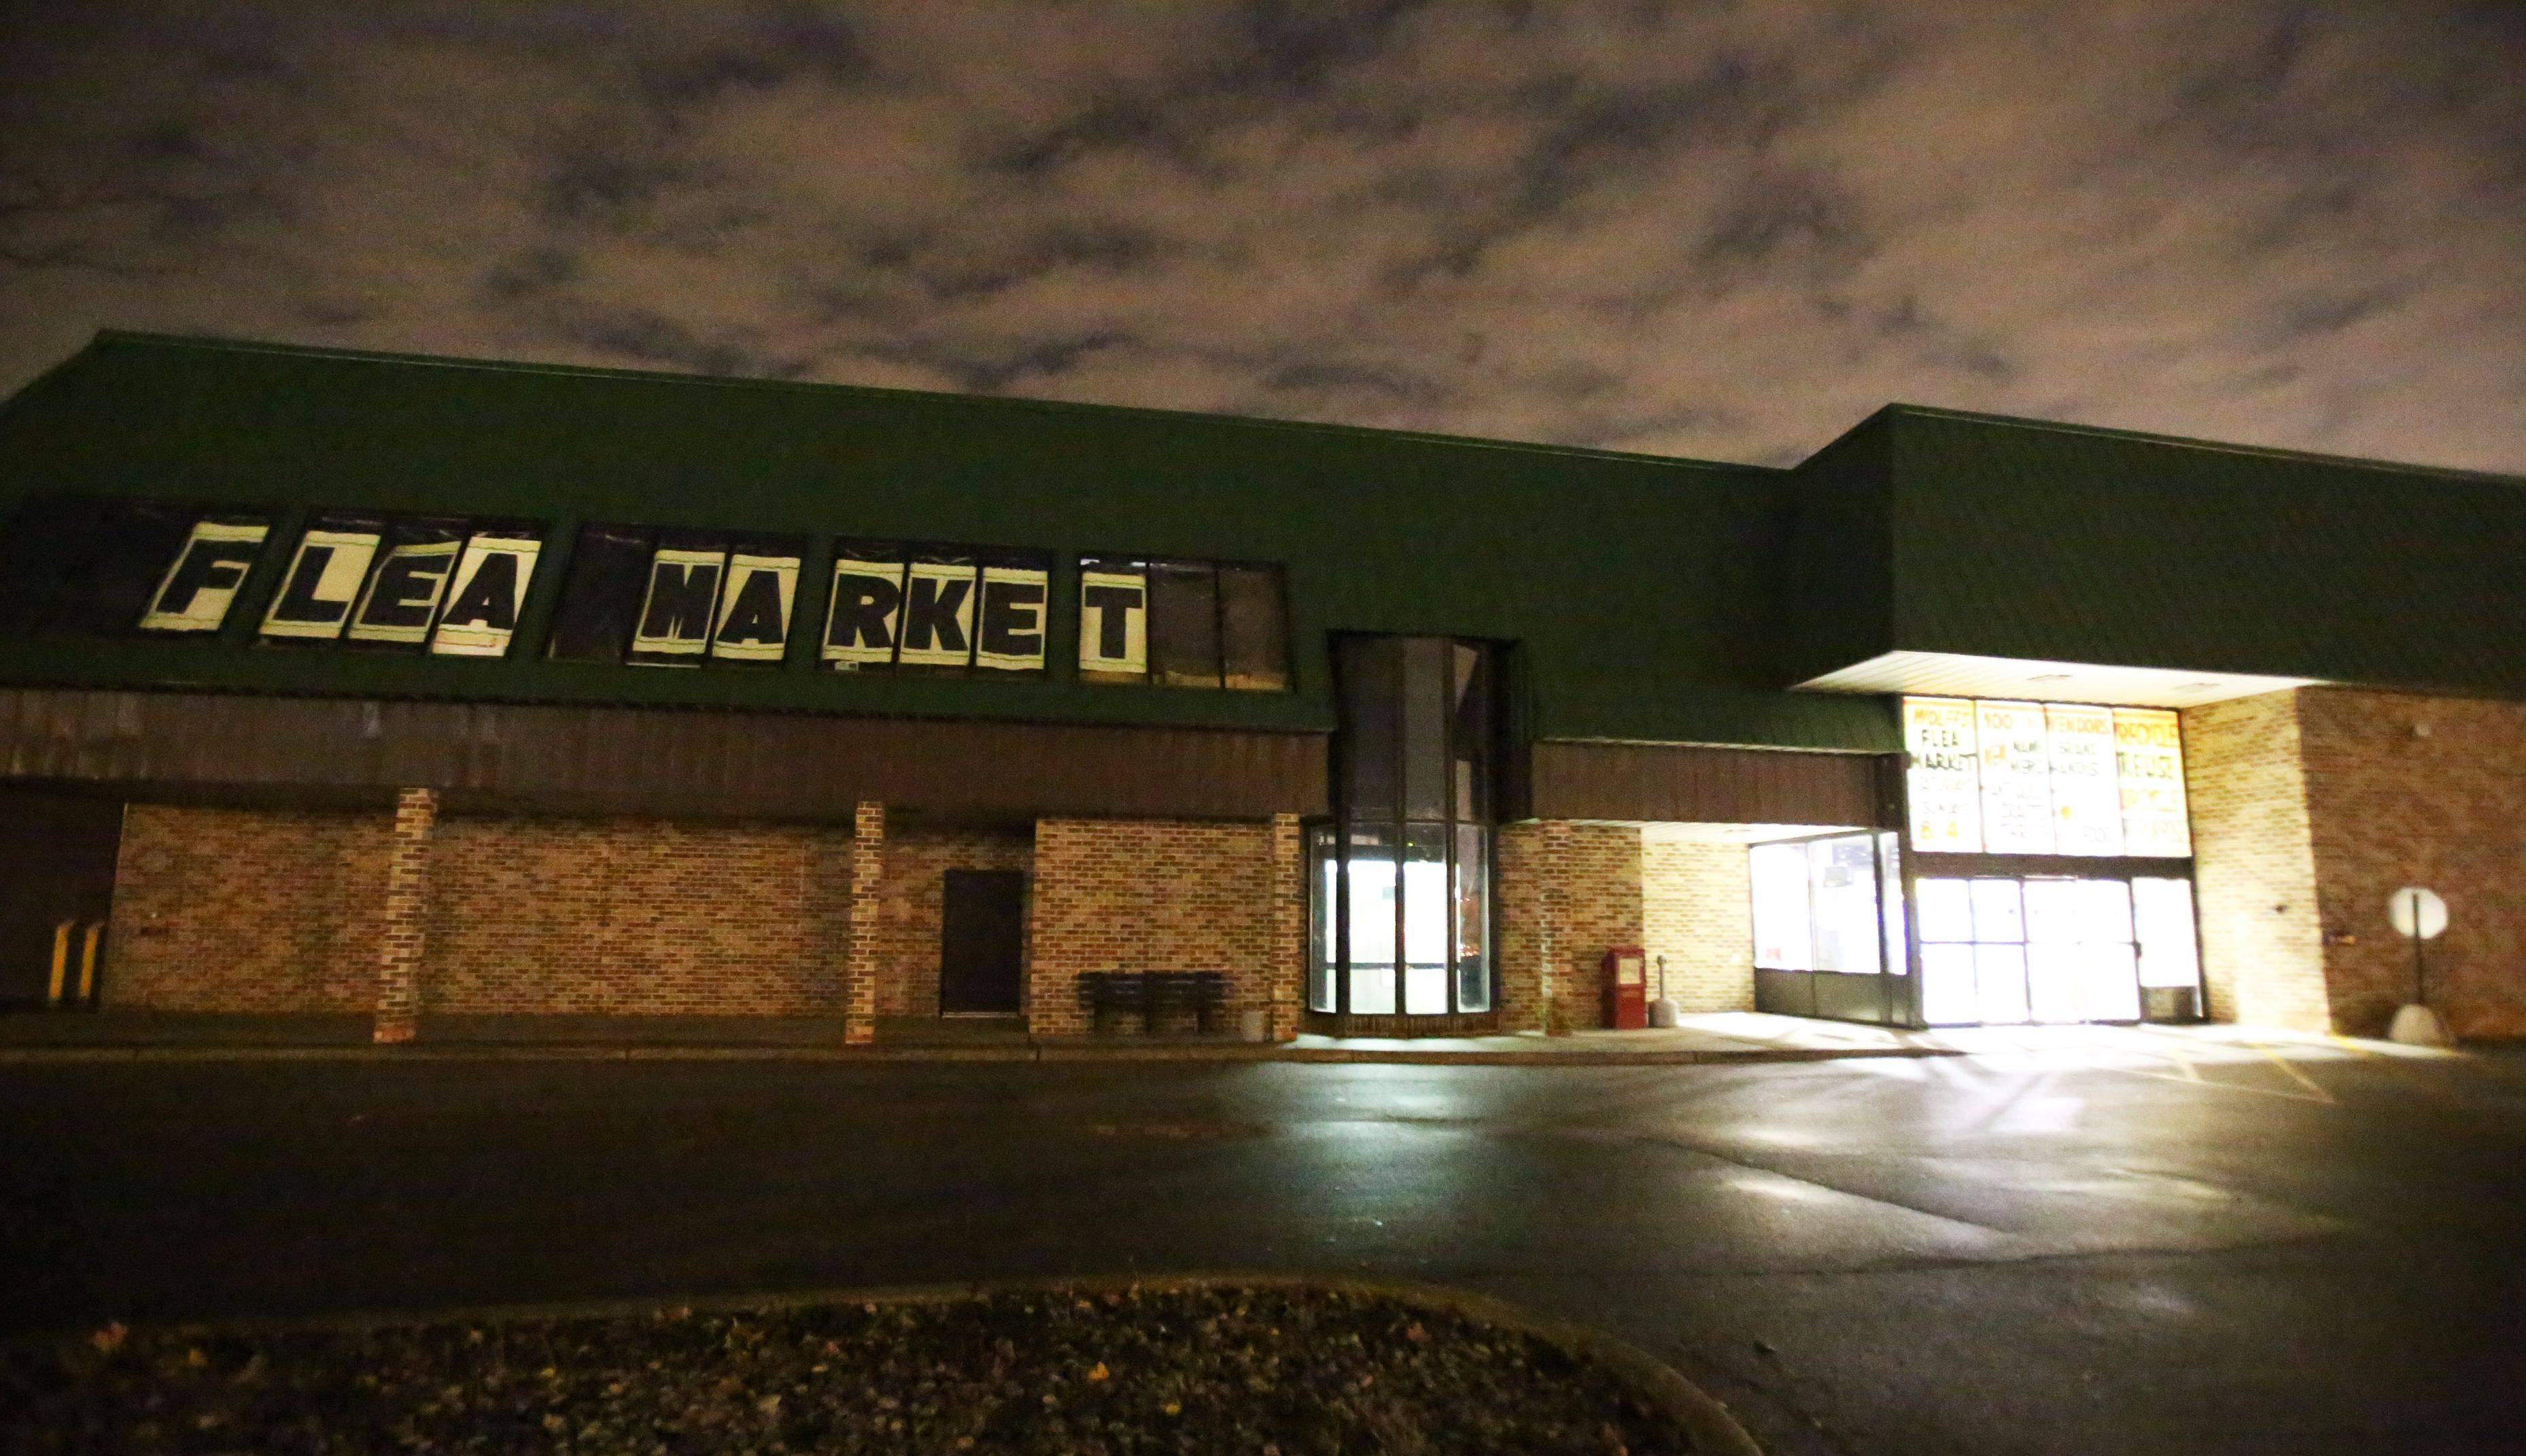 Palatine will enter into negotiations with a Rockford-based real estate firm that hopes to buy and redevelop the former Menards site at 1775 N. Rand Road. The village bought the property in 2008 after Menards closed. It has been used since mostly for flea markets.